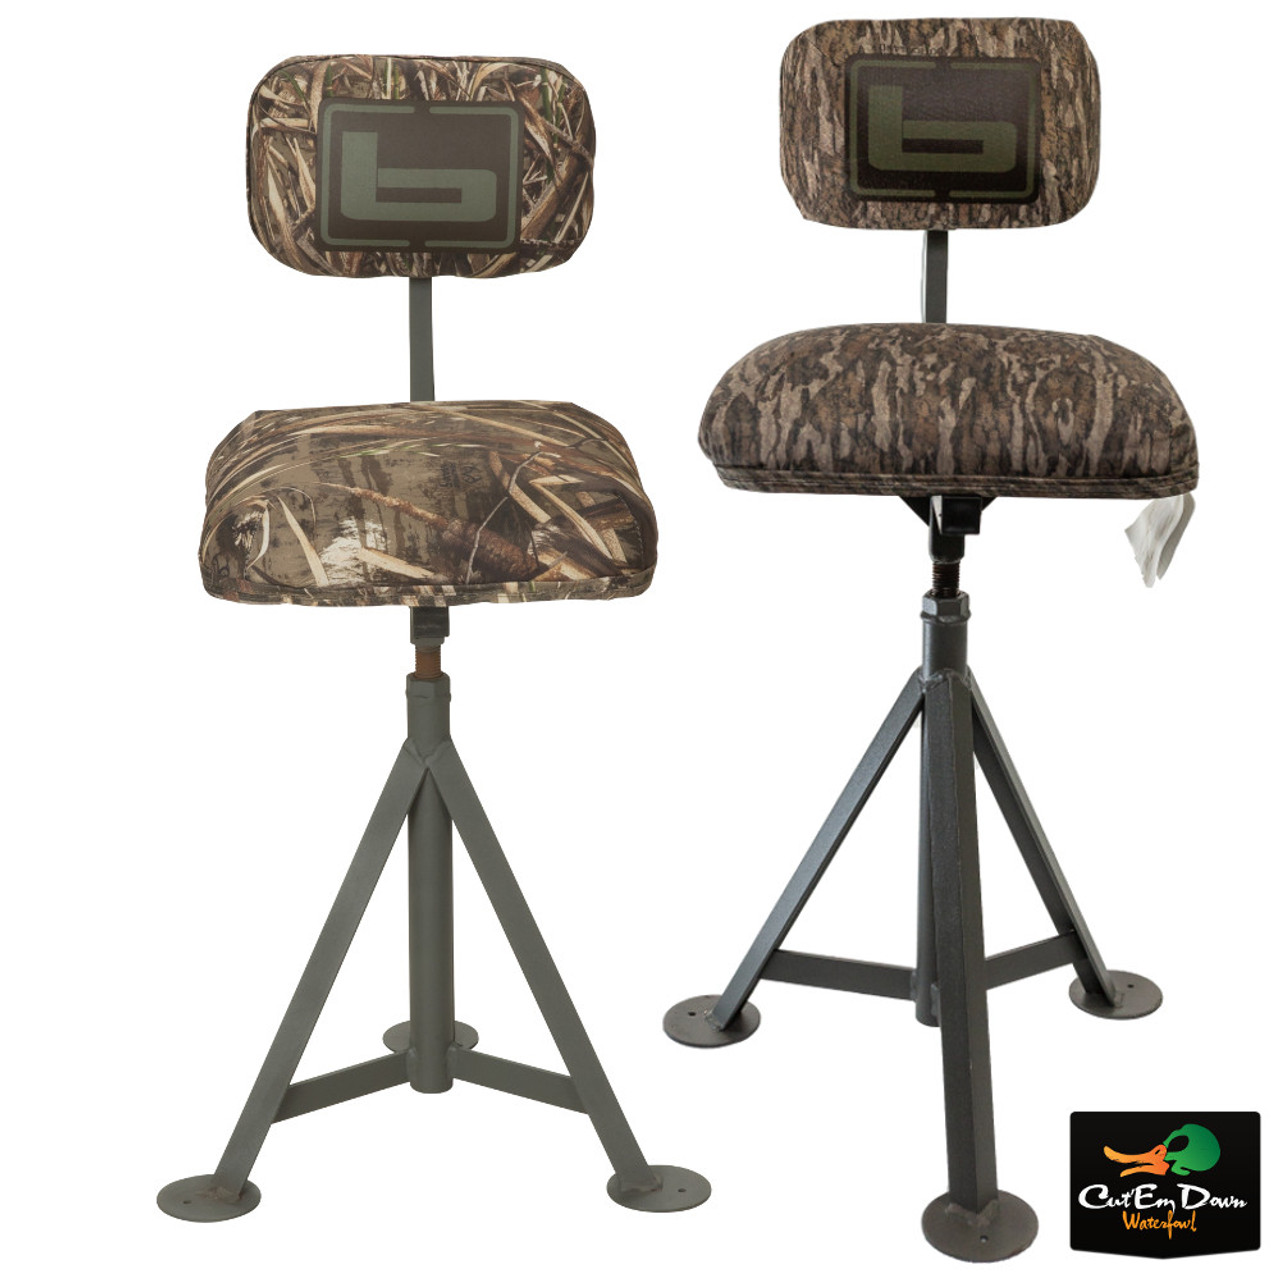 New Banded Gear Swivel Blind Chair Duck Hunting Camo Pit Seat Stool Padded Seats Chairs